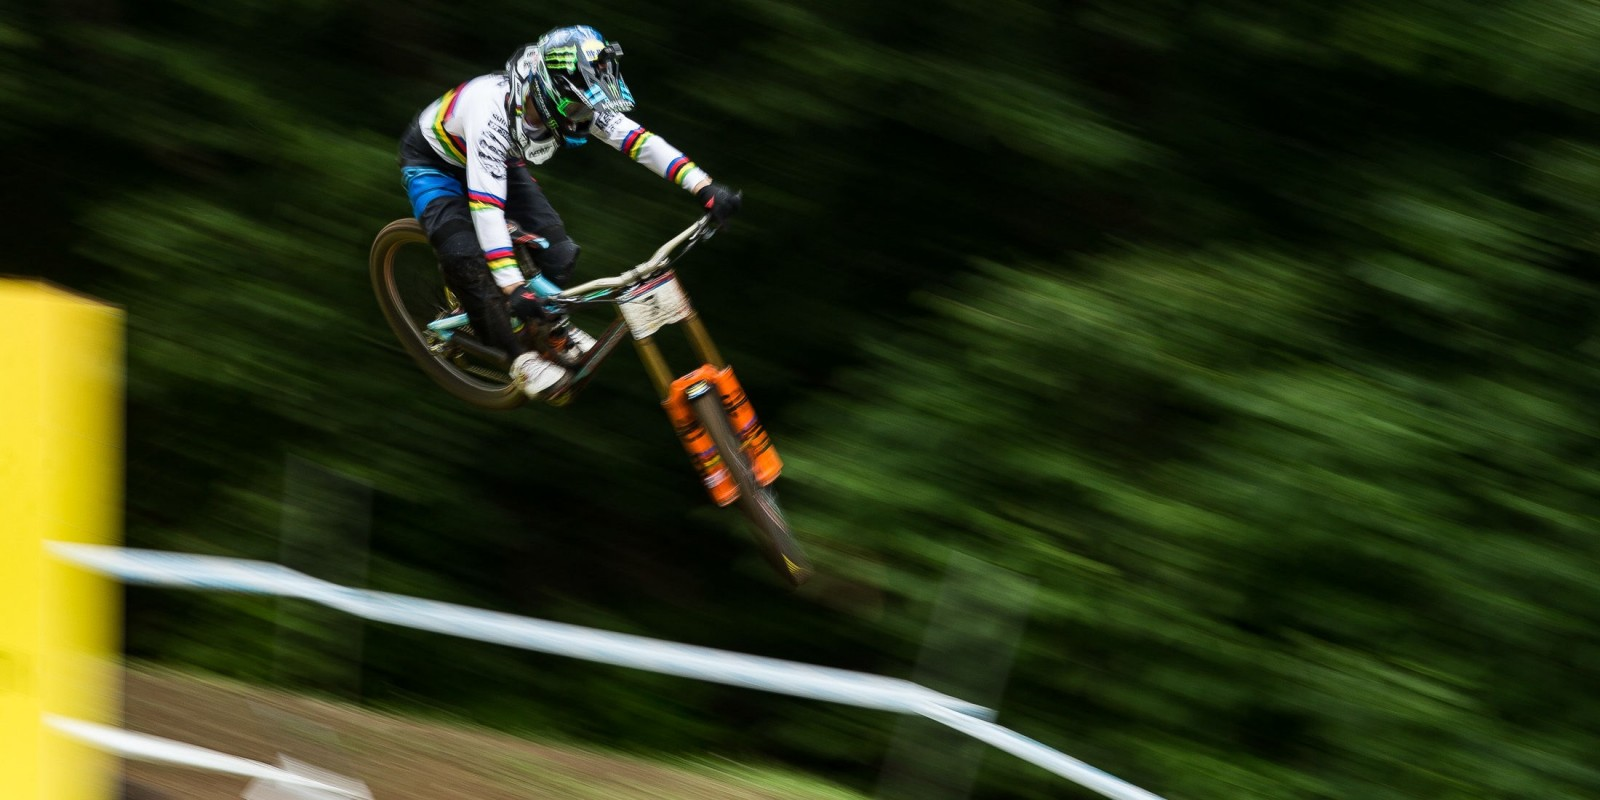 Action shots of our athletes at the Downhill World Cup, Mont Ste Anne in Quebec